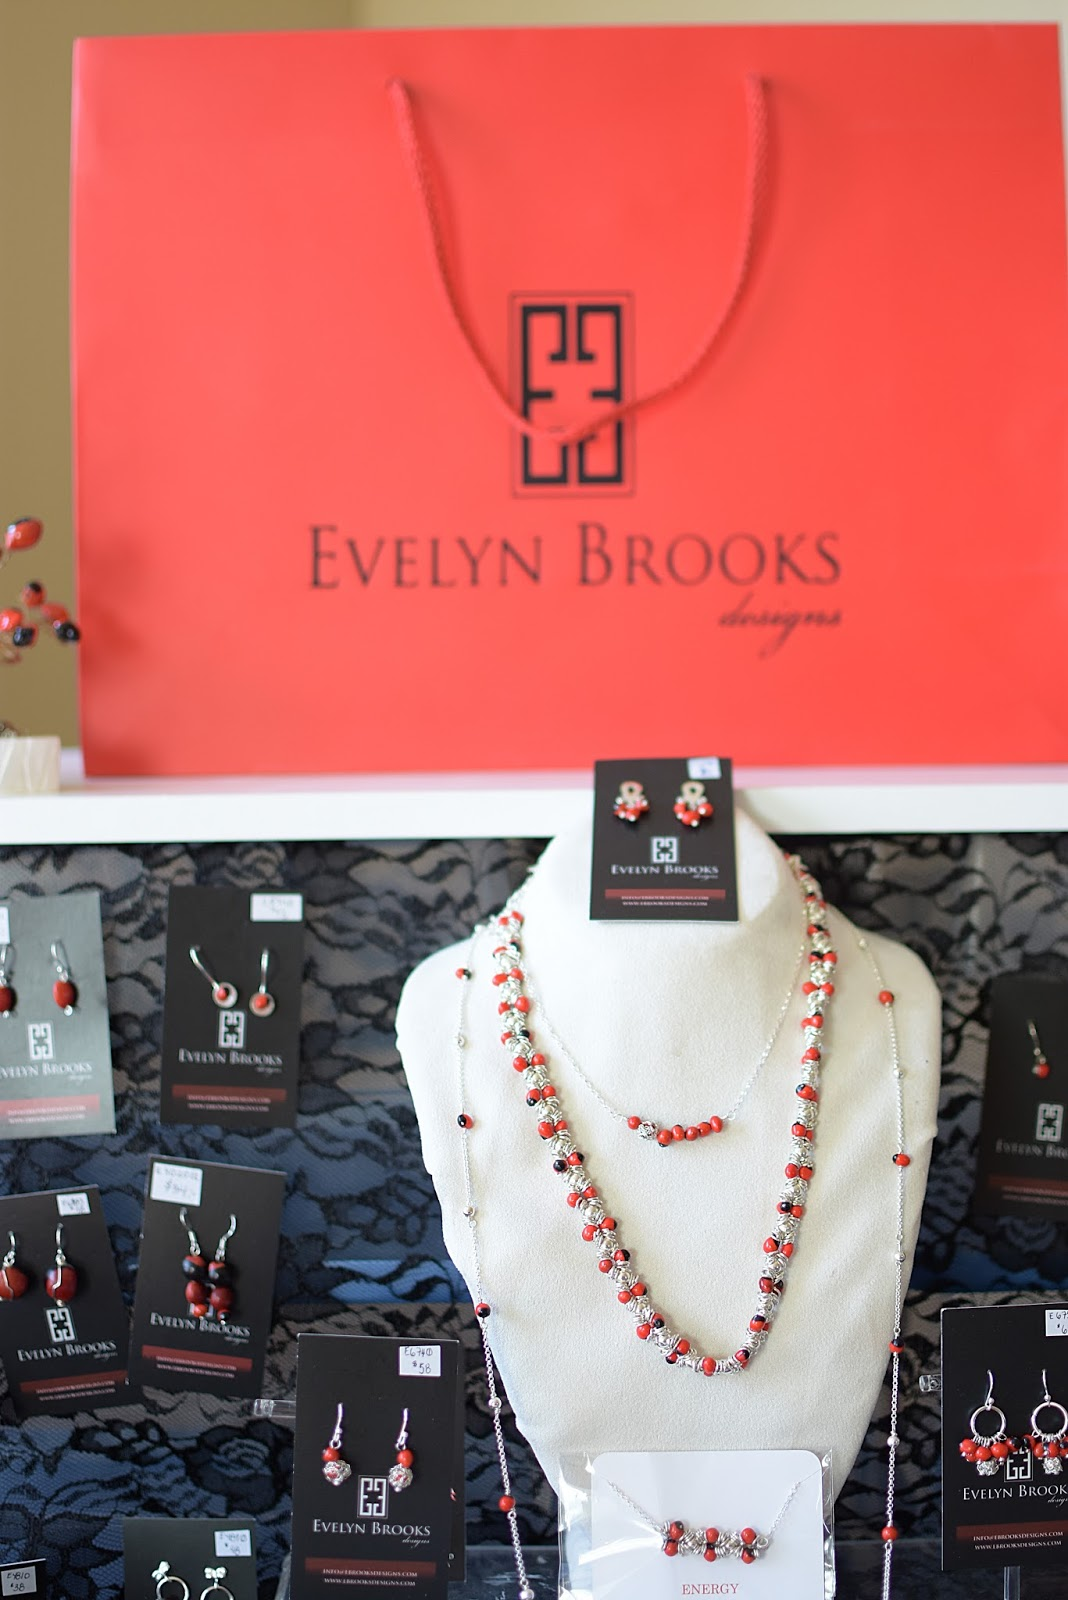 Evelyn Brooks, Blogger event, peruvian jewlery, jewelry event, evelyn brooks designs, blogger shopping